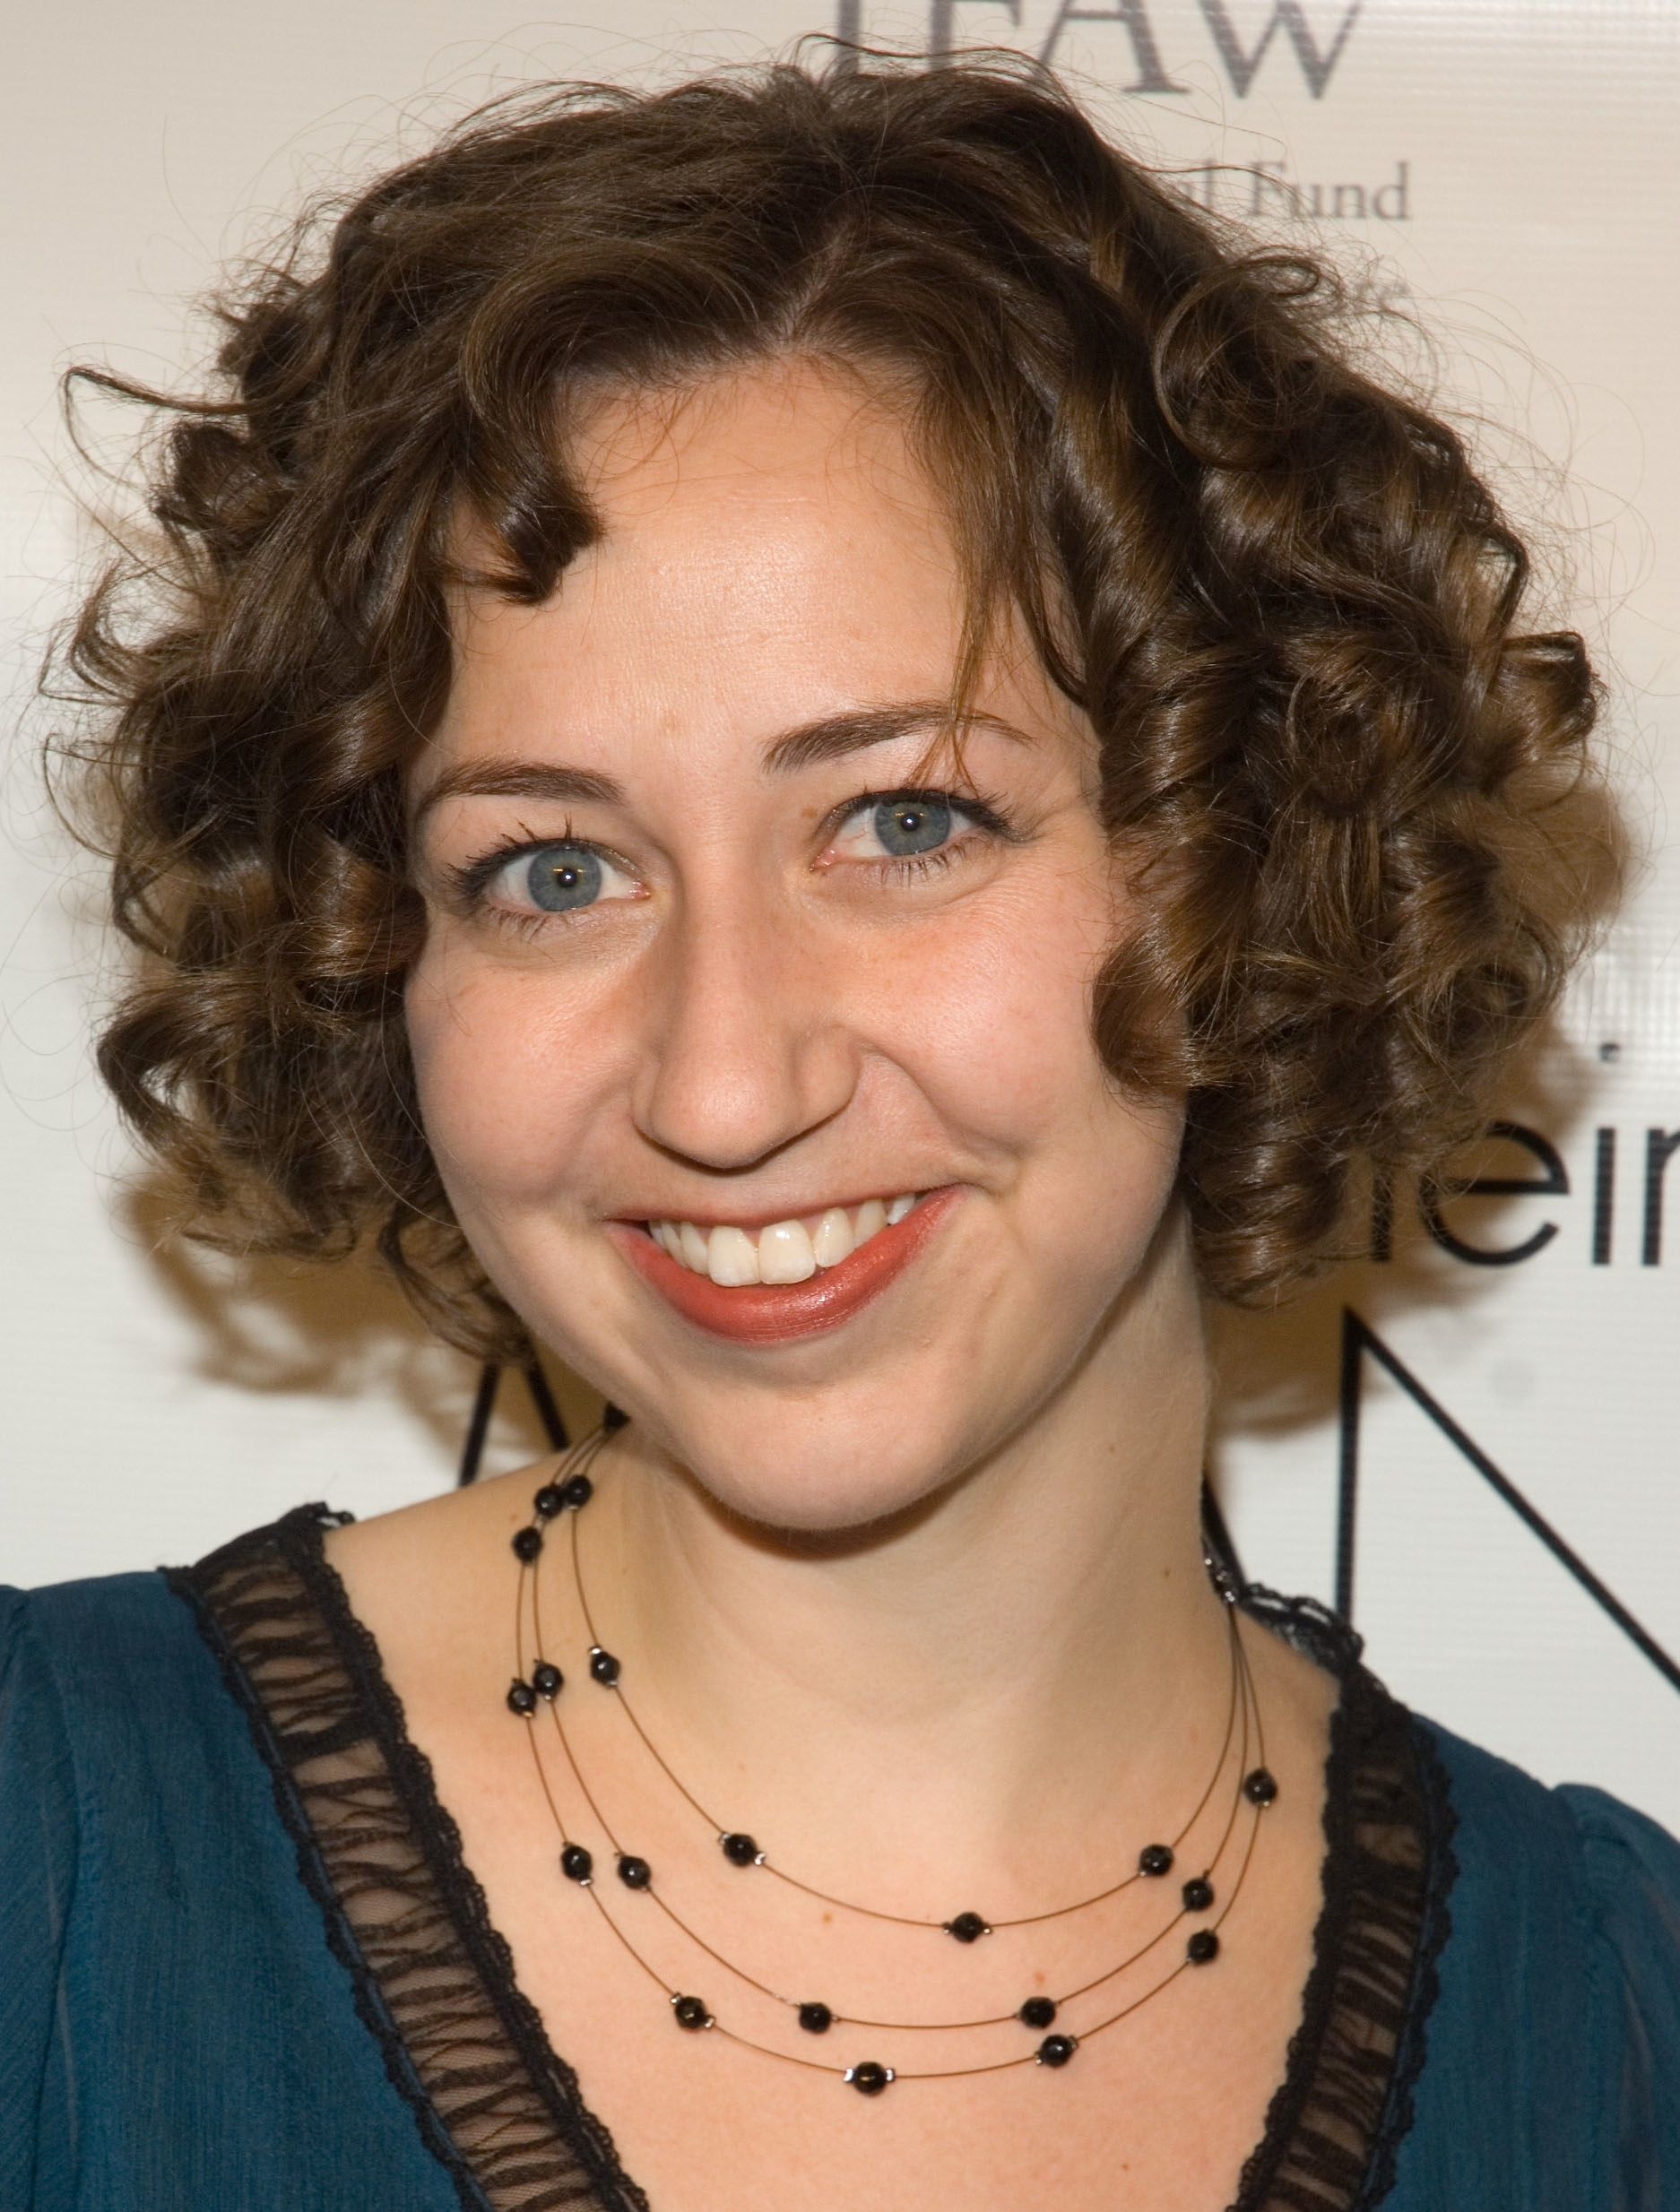 Astonishing Kristen Schaal Short Curly Hair Hairstyles Pinterest Bobs Hairstyle Inspiration Daily Dogsangcom